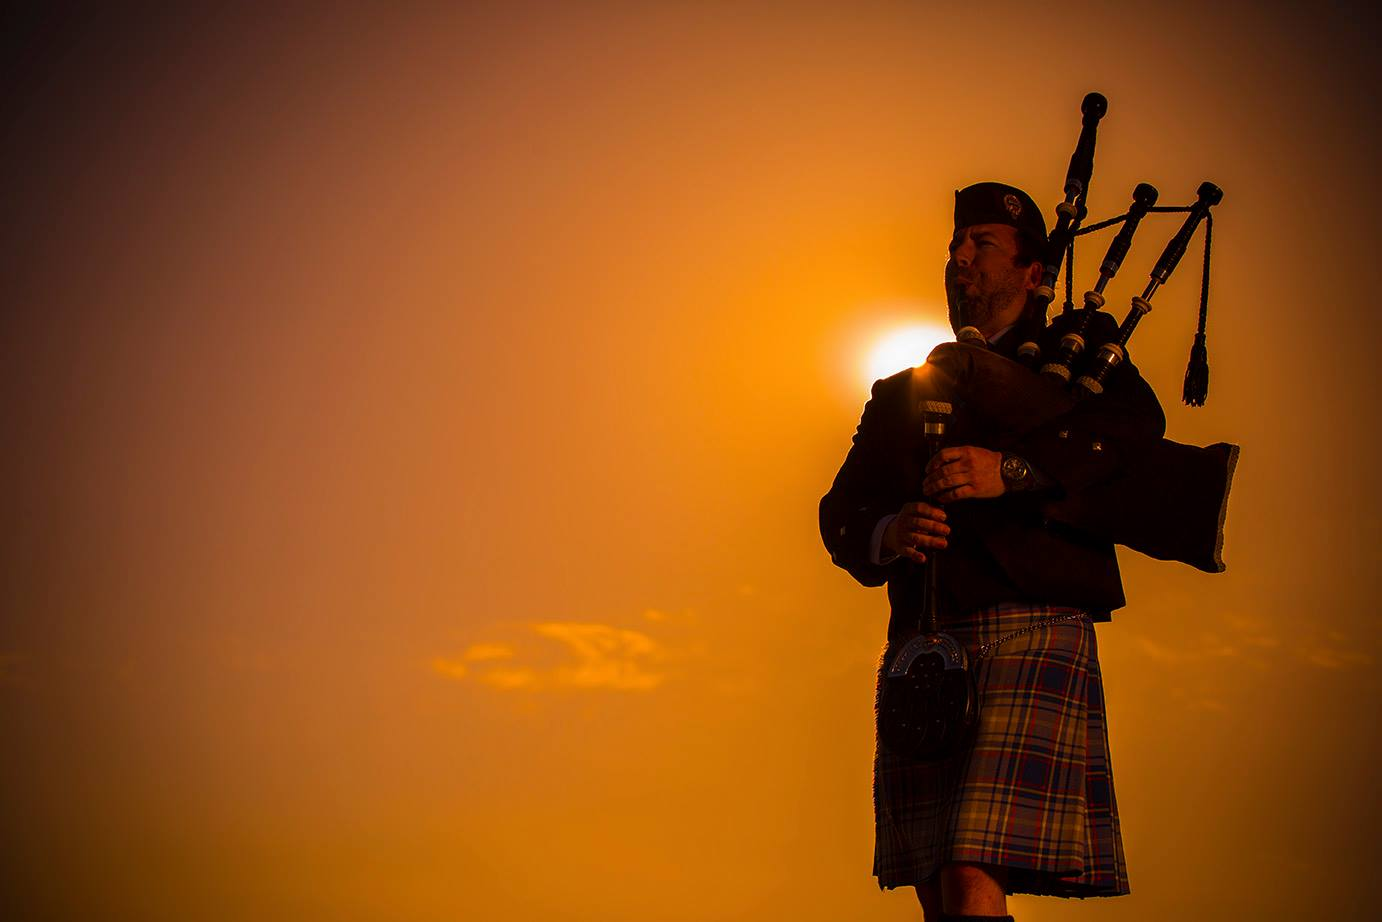 BAGPIPES FOR anY oCCASION - LIVE IN LAS VEGAS